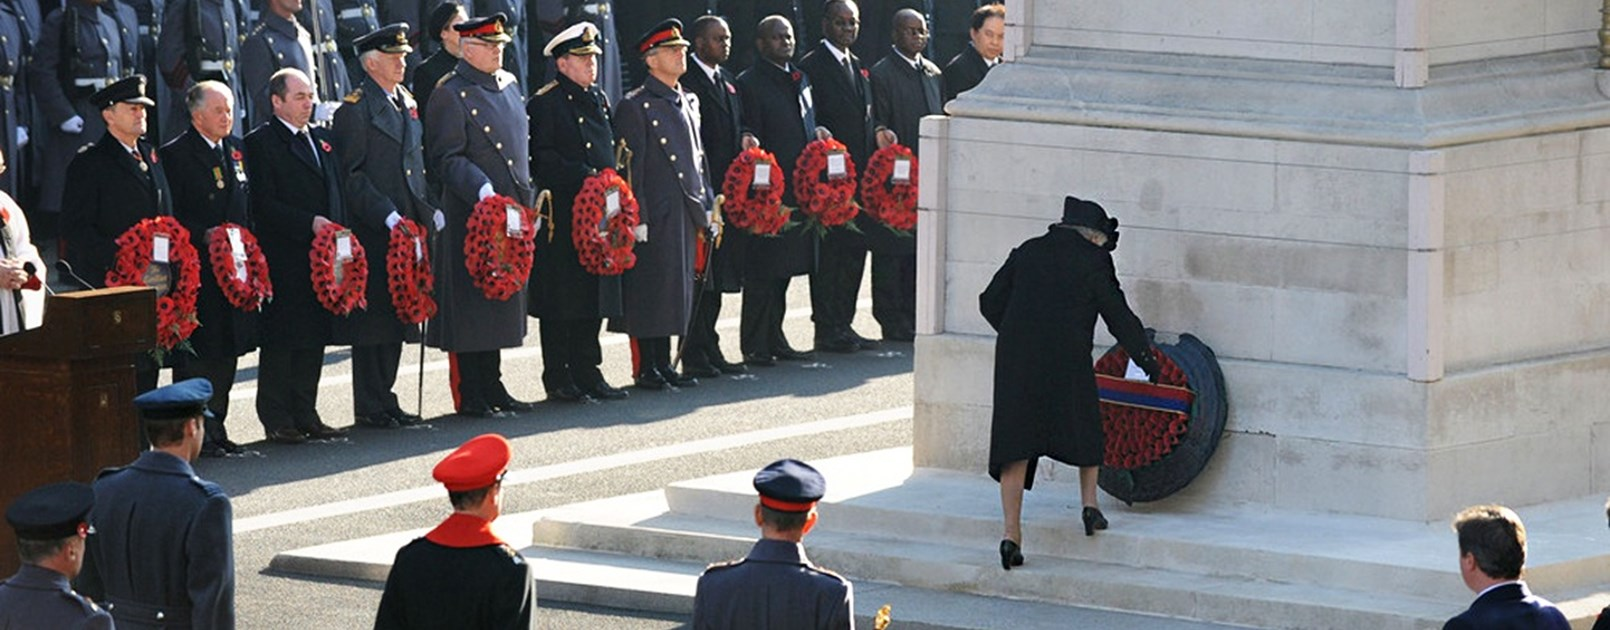 Remembrance Sunday 2019 uk